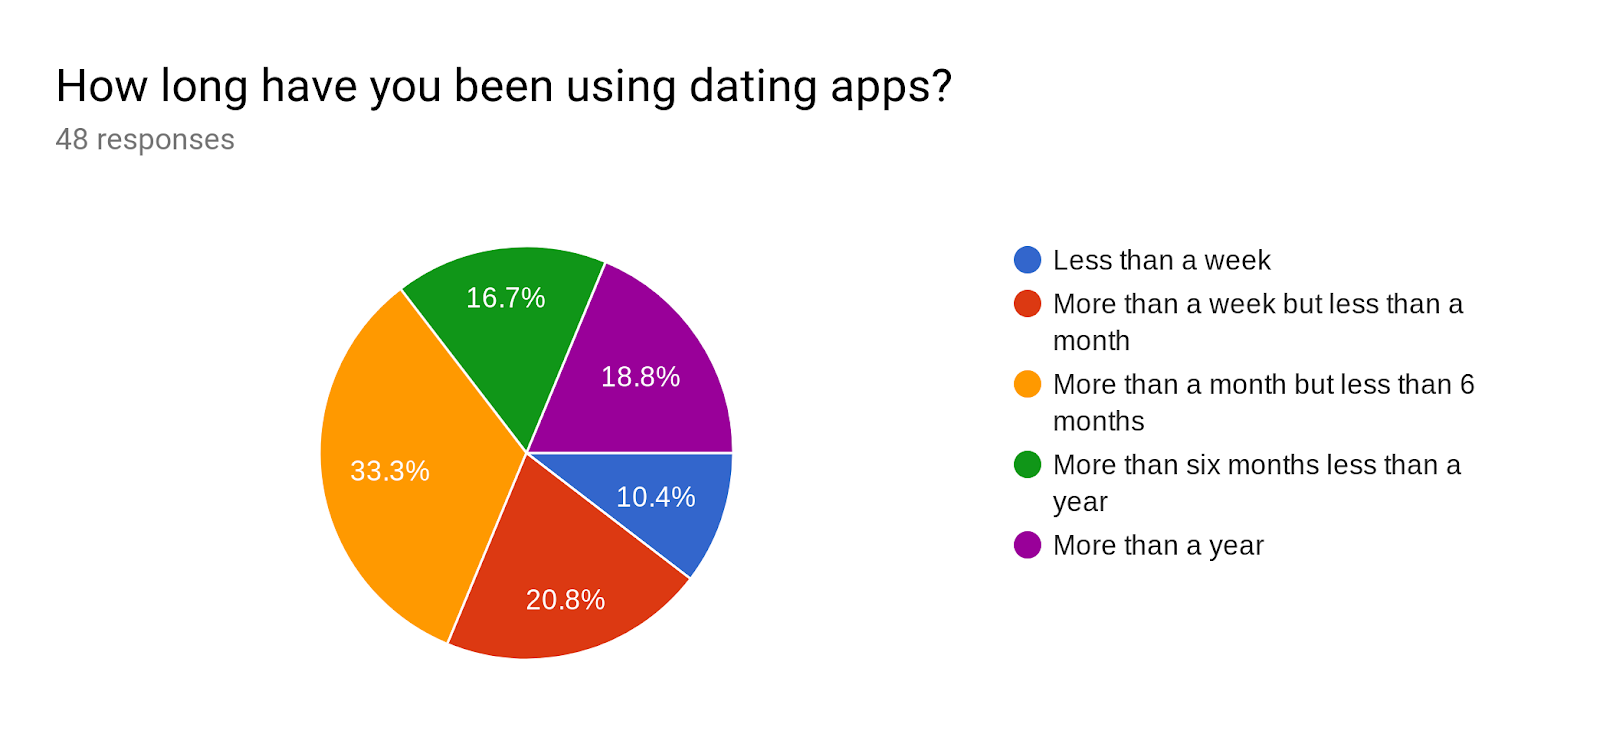 Forms response chart. Question title: How long have you been using dating apps? . Number of responses: 48 responses.